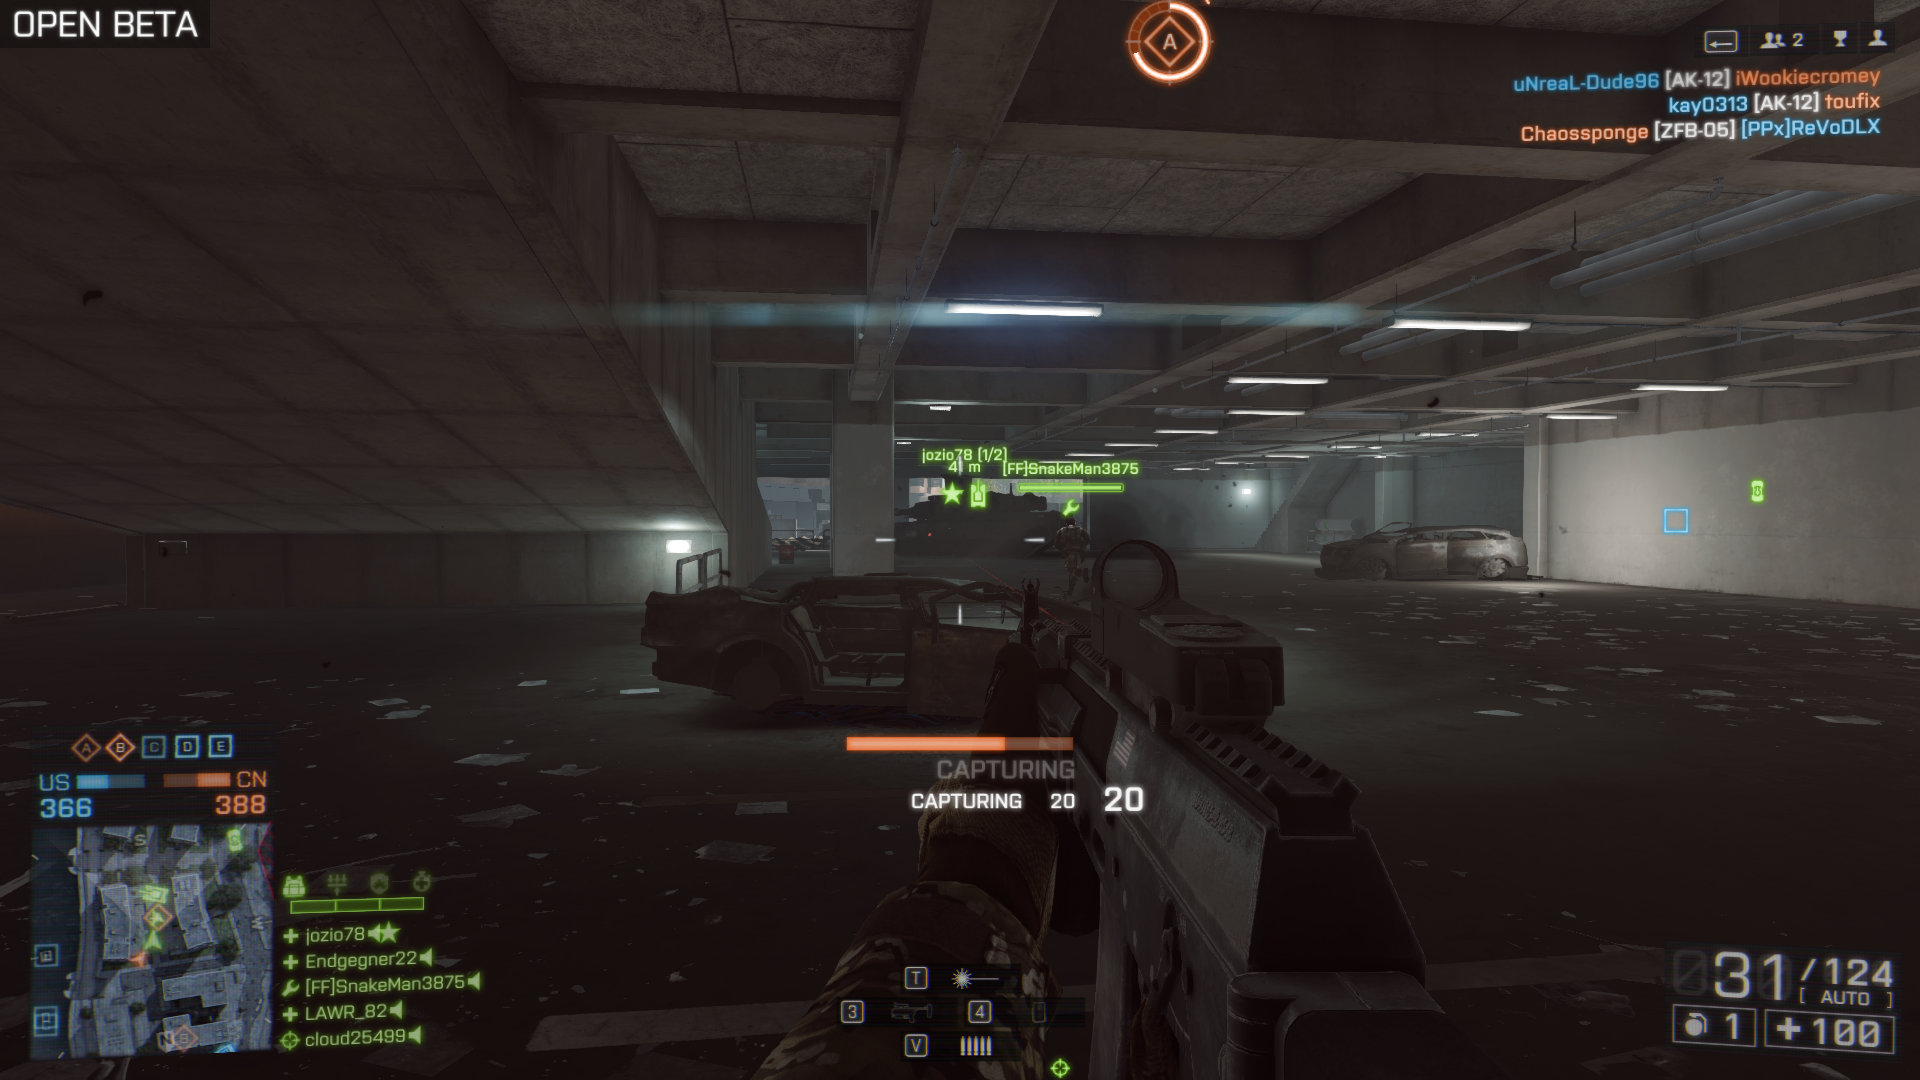 http://endgegner.fightercom.de/BF4_Screenshot/Battlefield4OpenBeta12.png